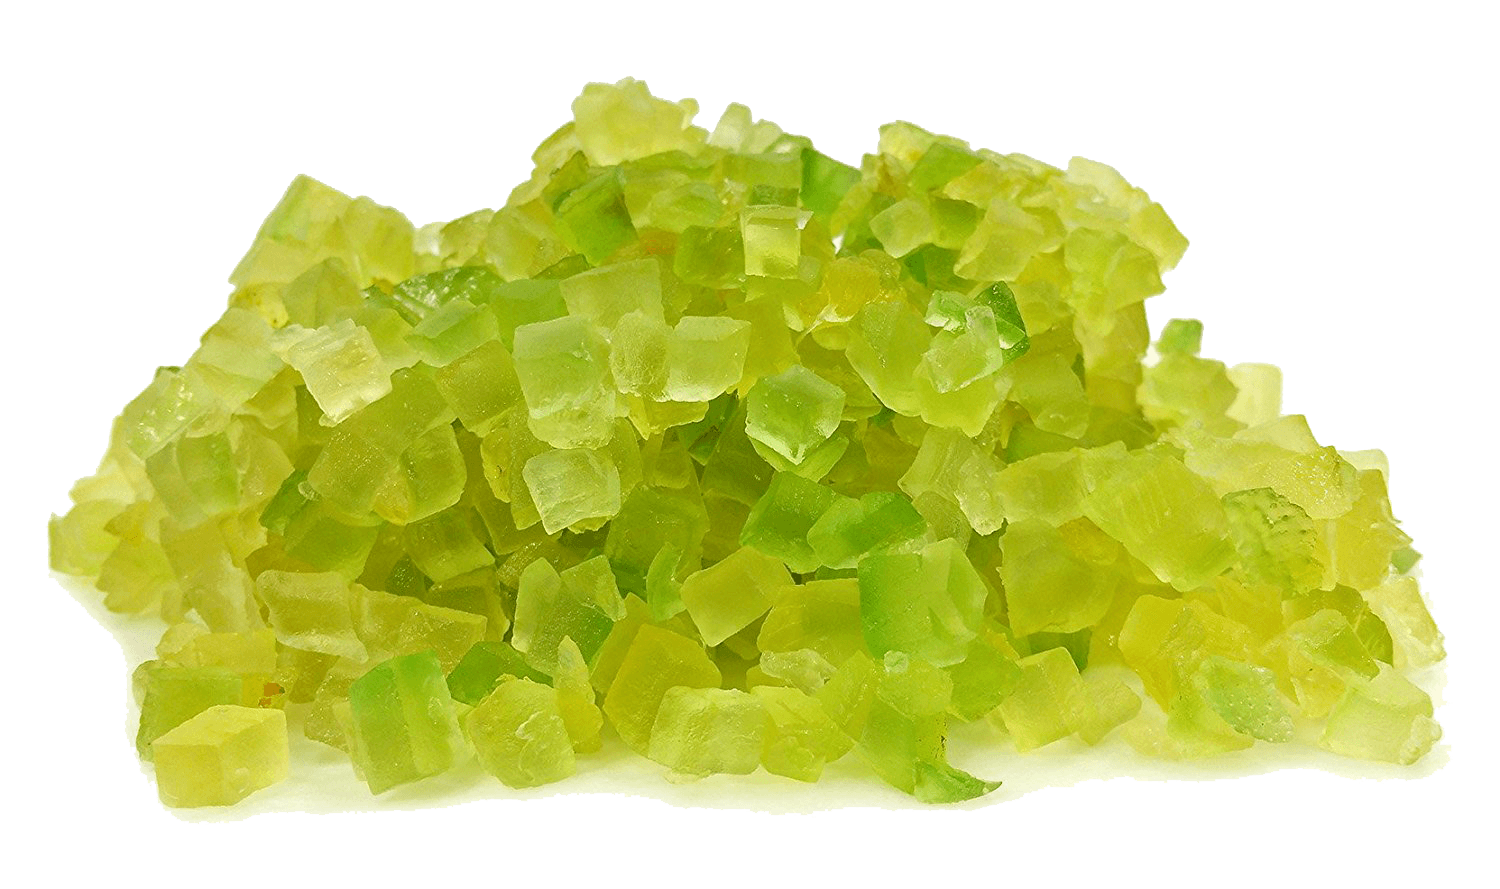 Italian Easter Products - Hand Cubed Candied Citron (Cedro) 12 Ounce Container - Free Shipping